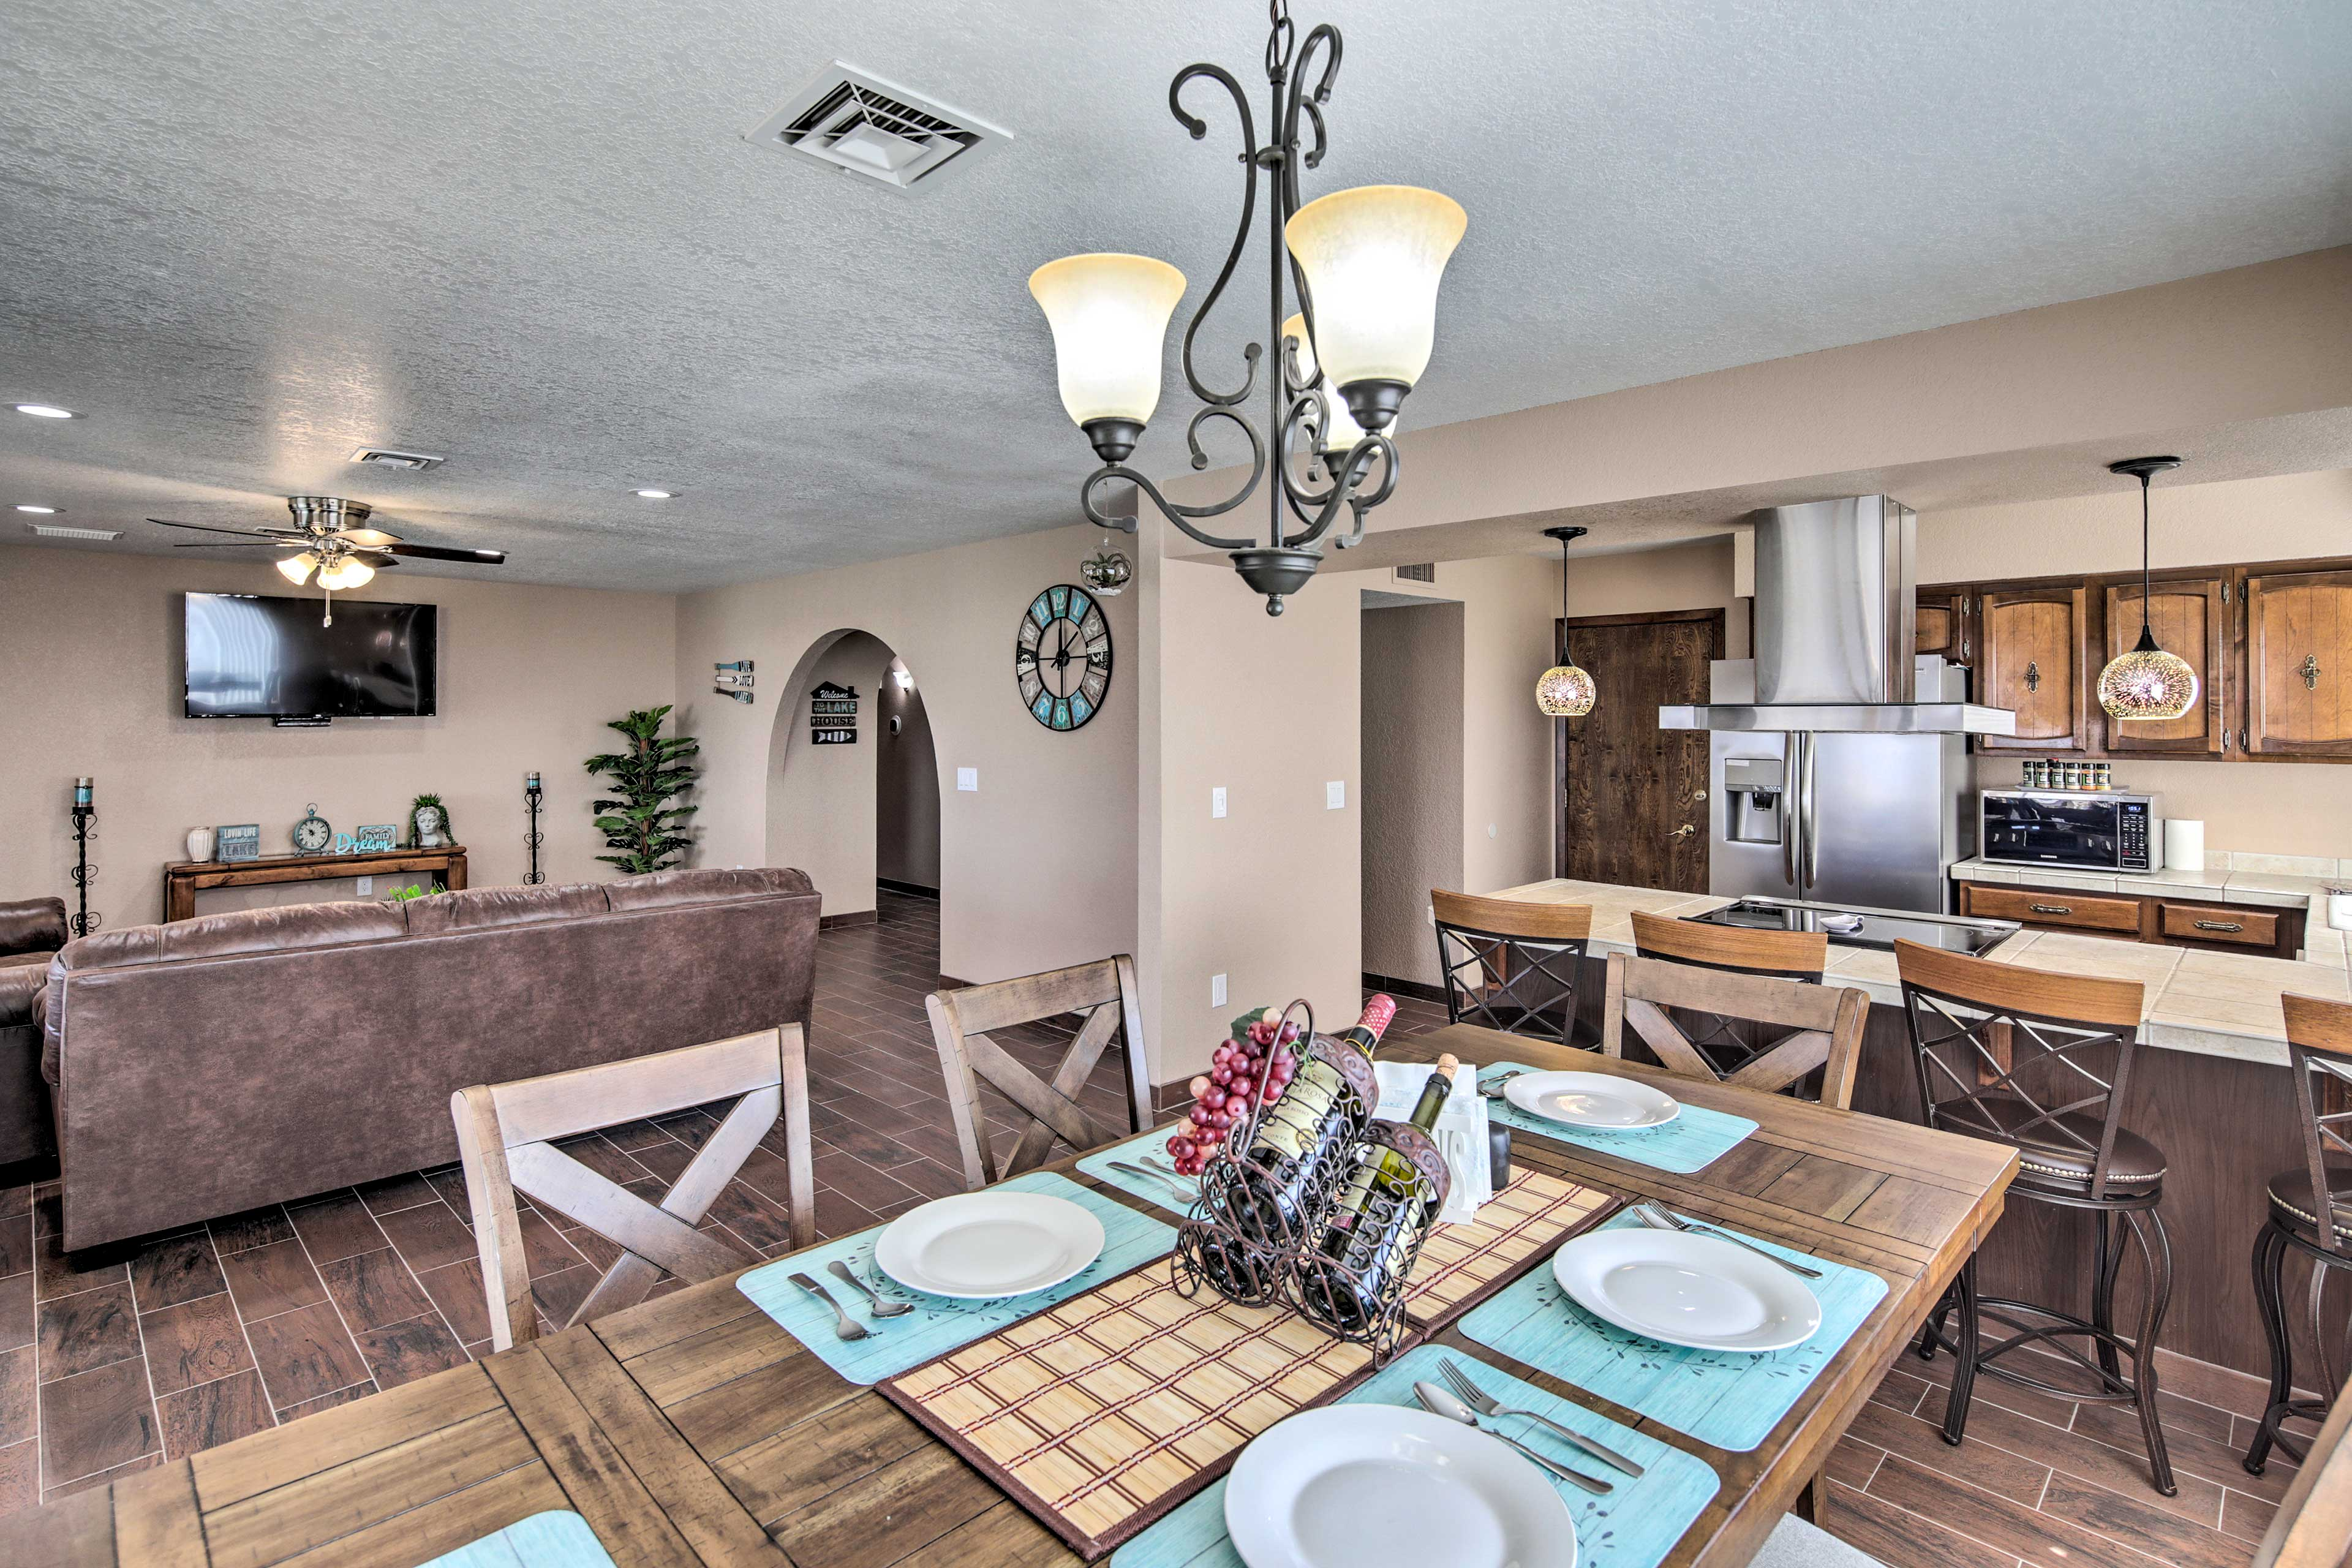 Choose from a seat at the breakfast bar or dining room table.